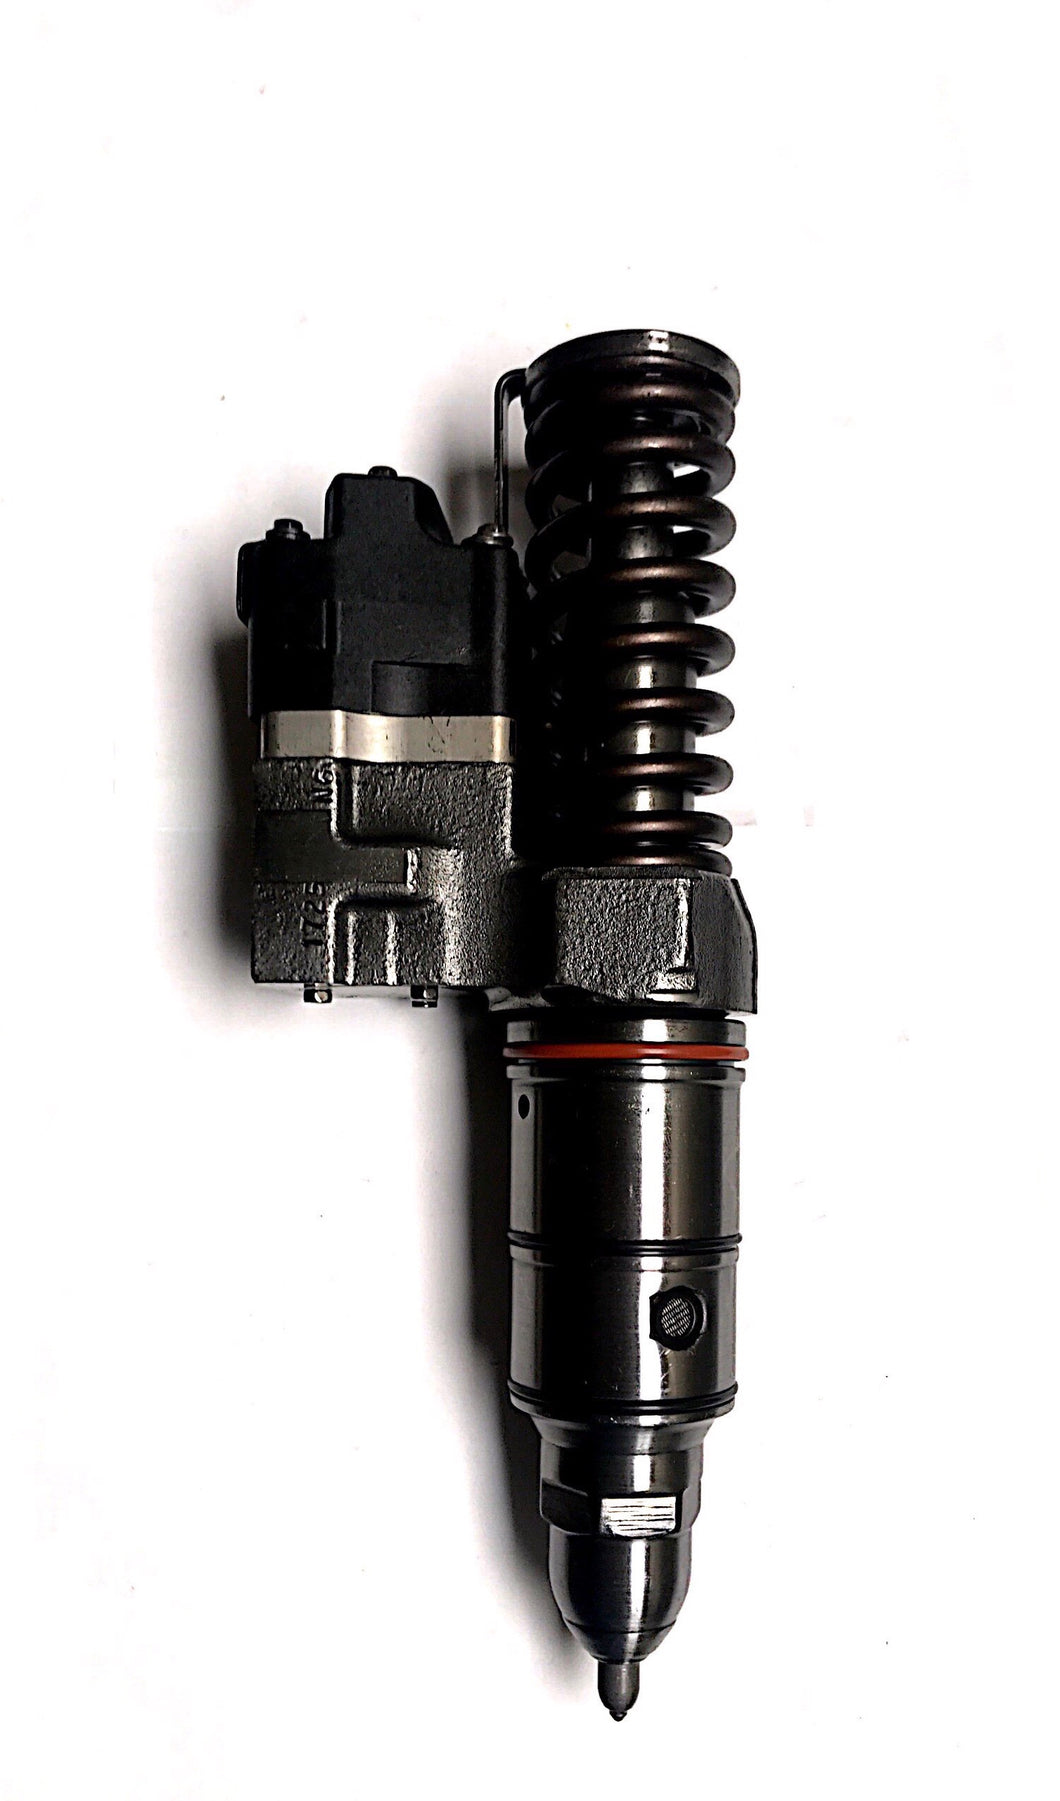 5234970 DETROIT INJECTOR| S-60| (REMANUFACTURED)